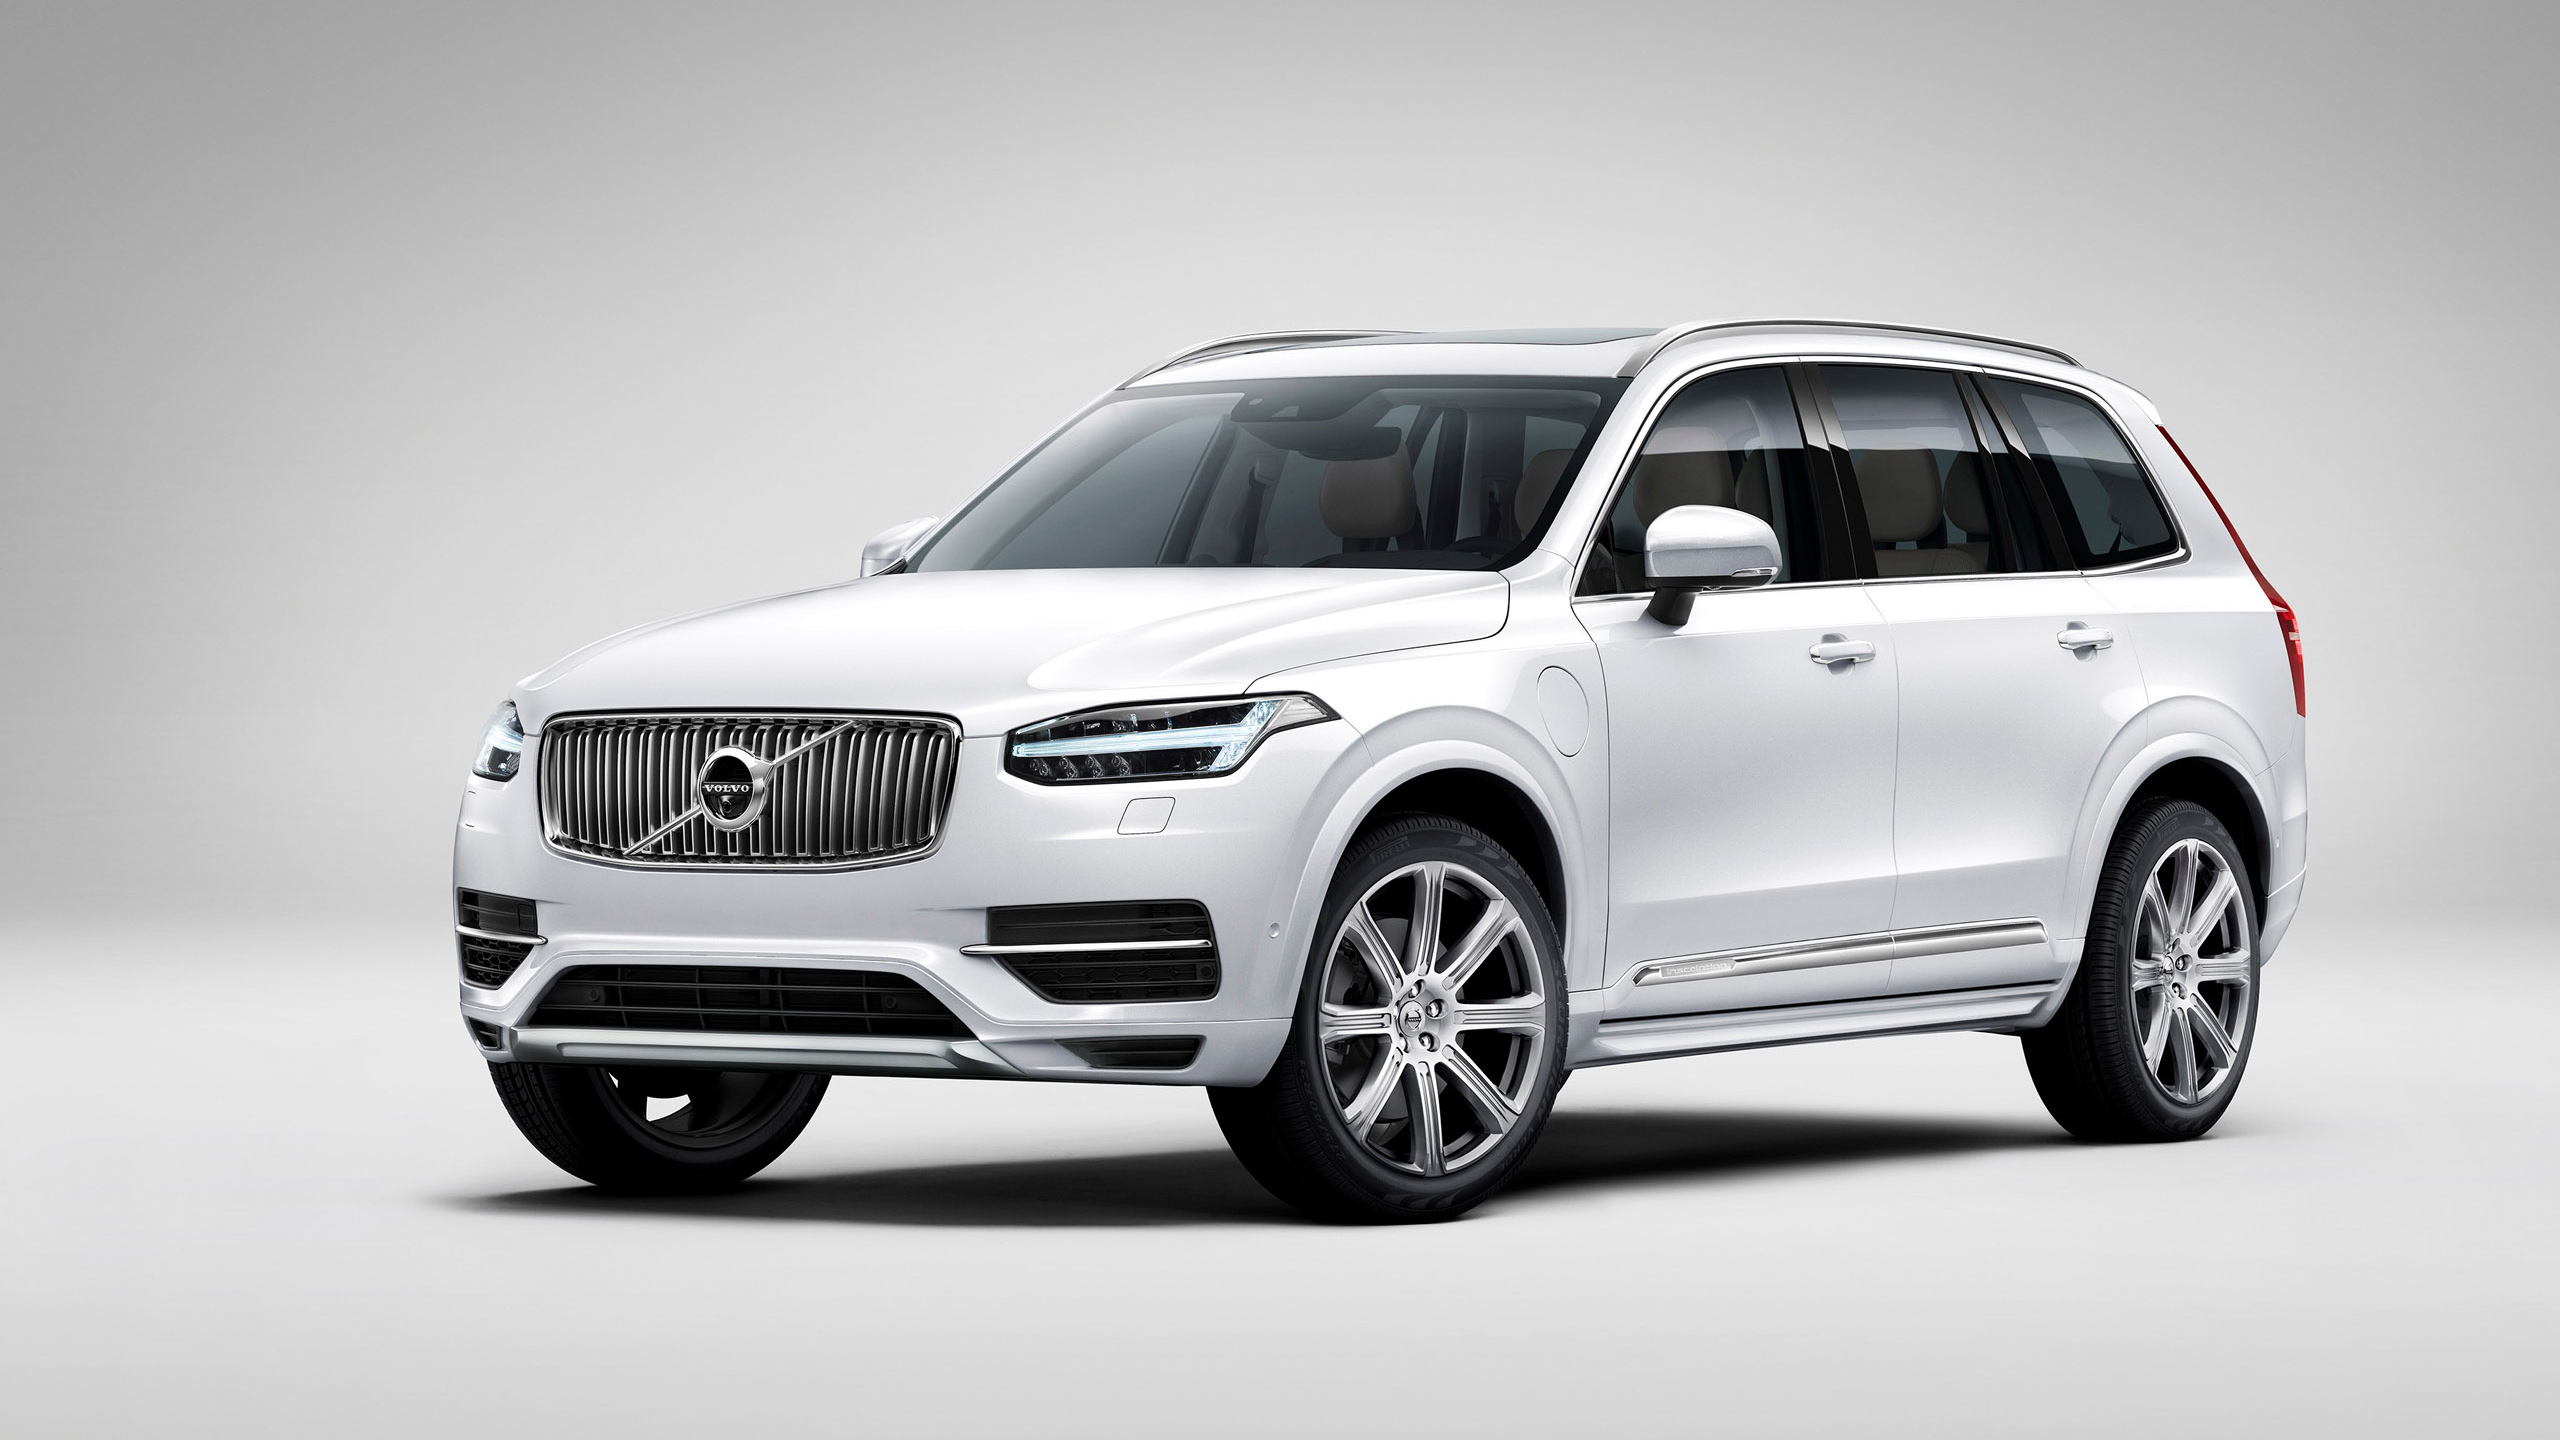 Volvo XC90 2015 Wallpaper | HD Car Wallpapers | ID #4802